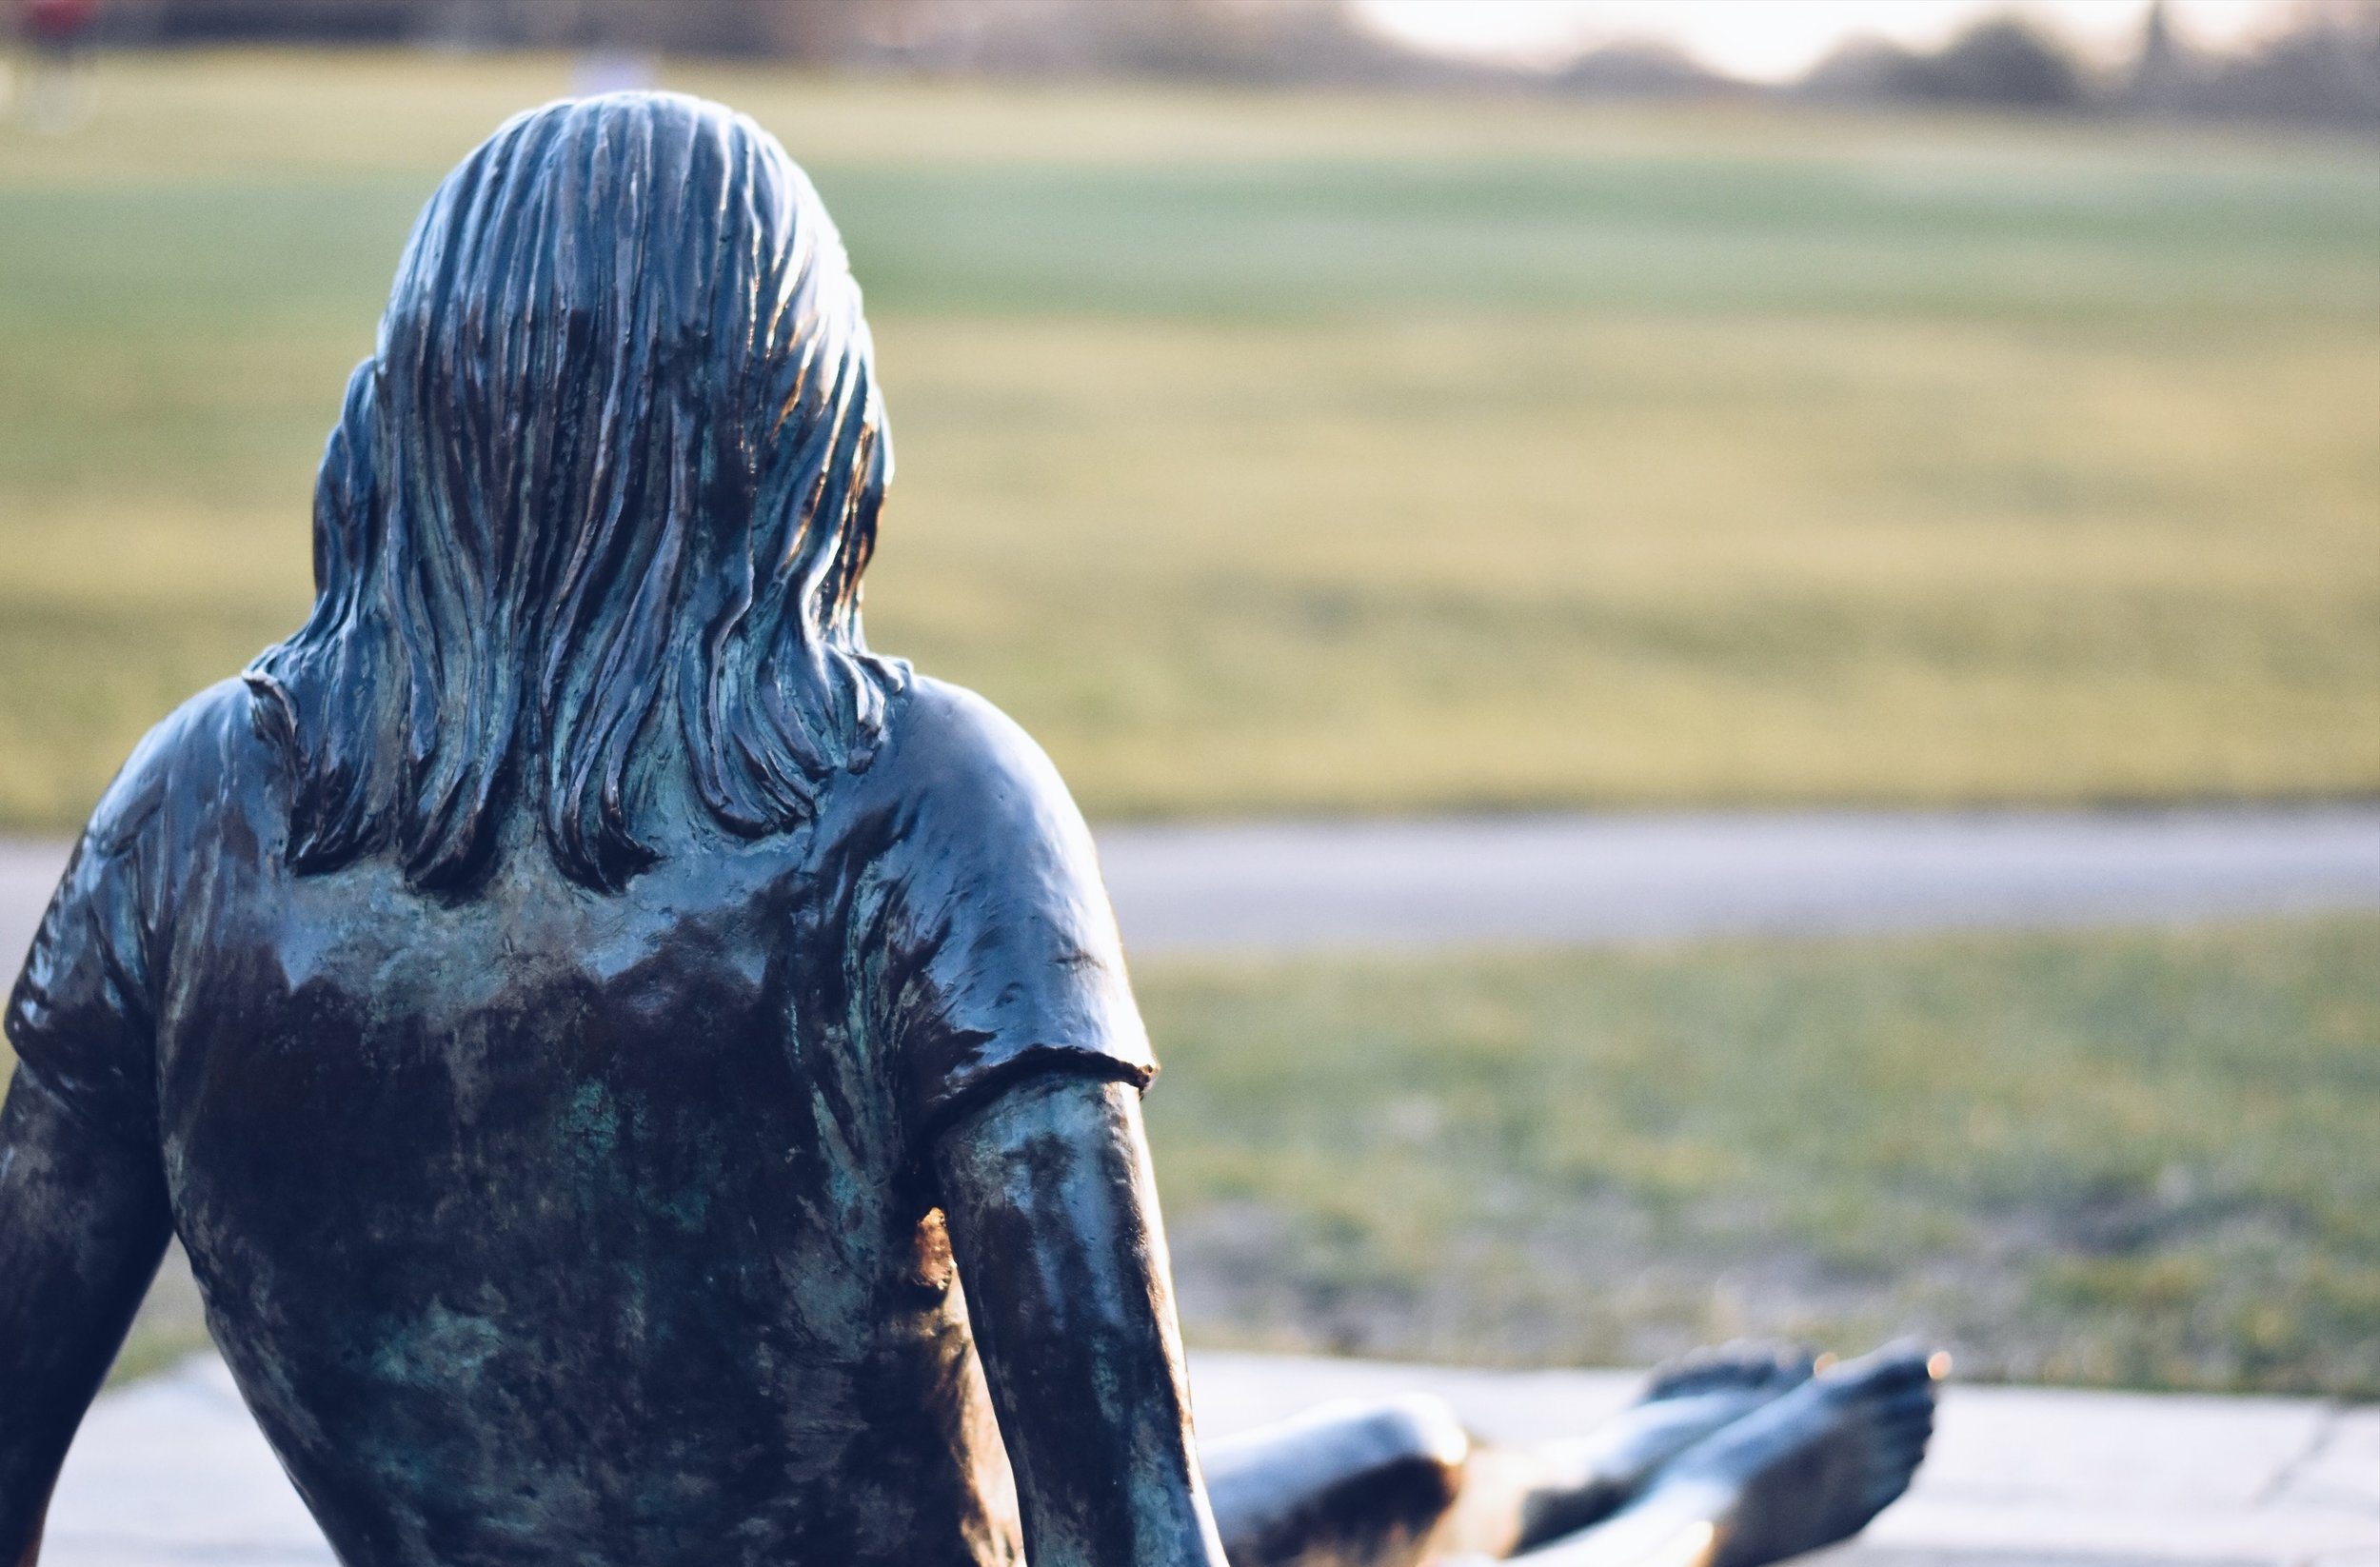 This young woman, flip flops beside her, has been relaxing in the park for nearly thirty years. She looks a bit chilly in winter.